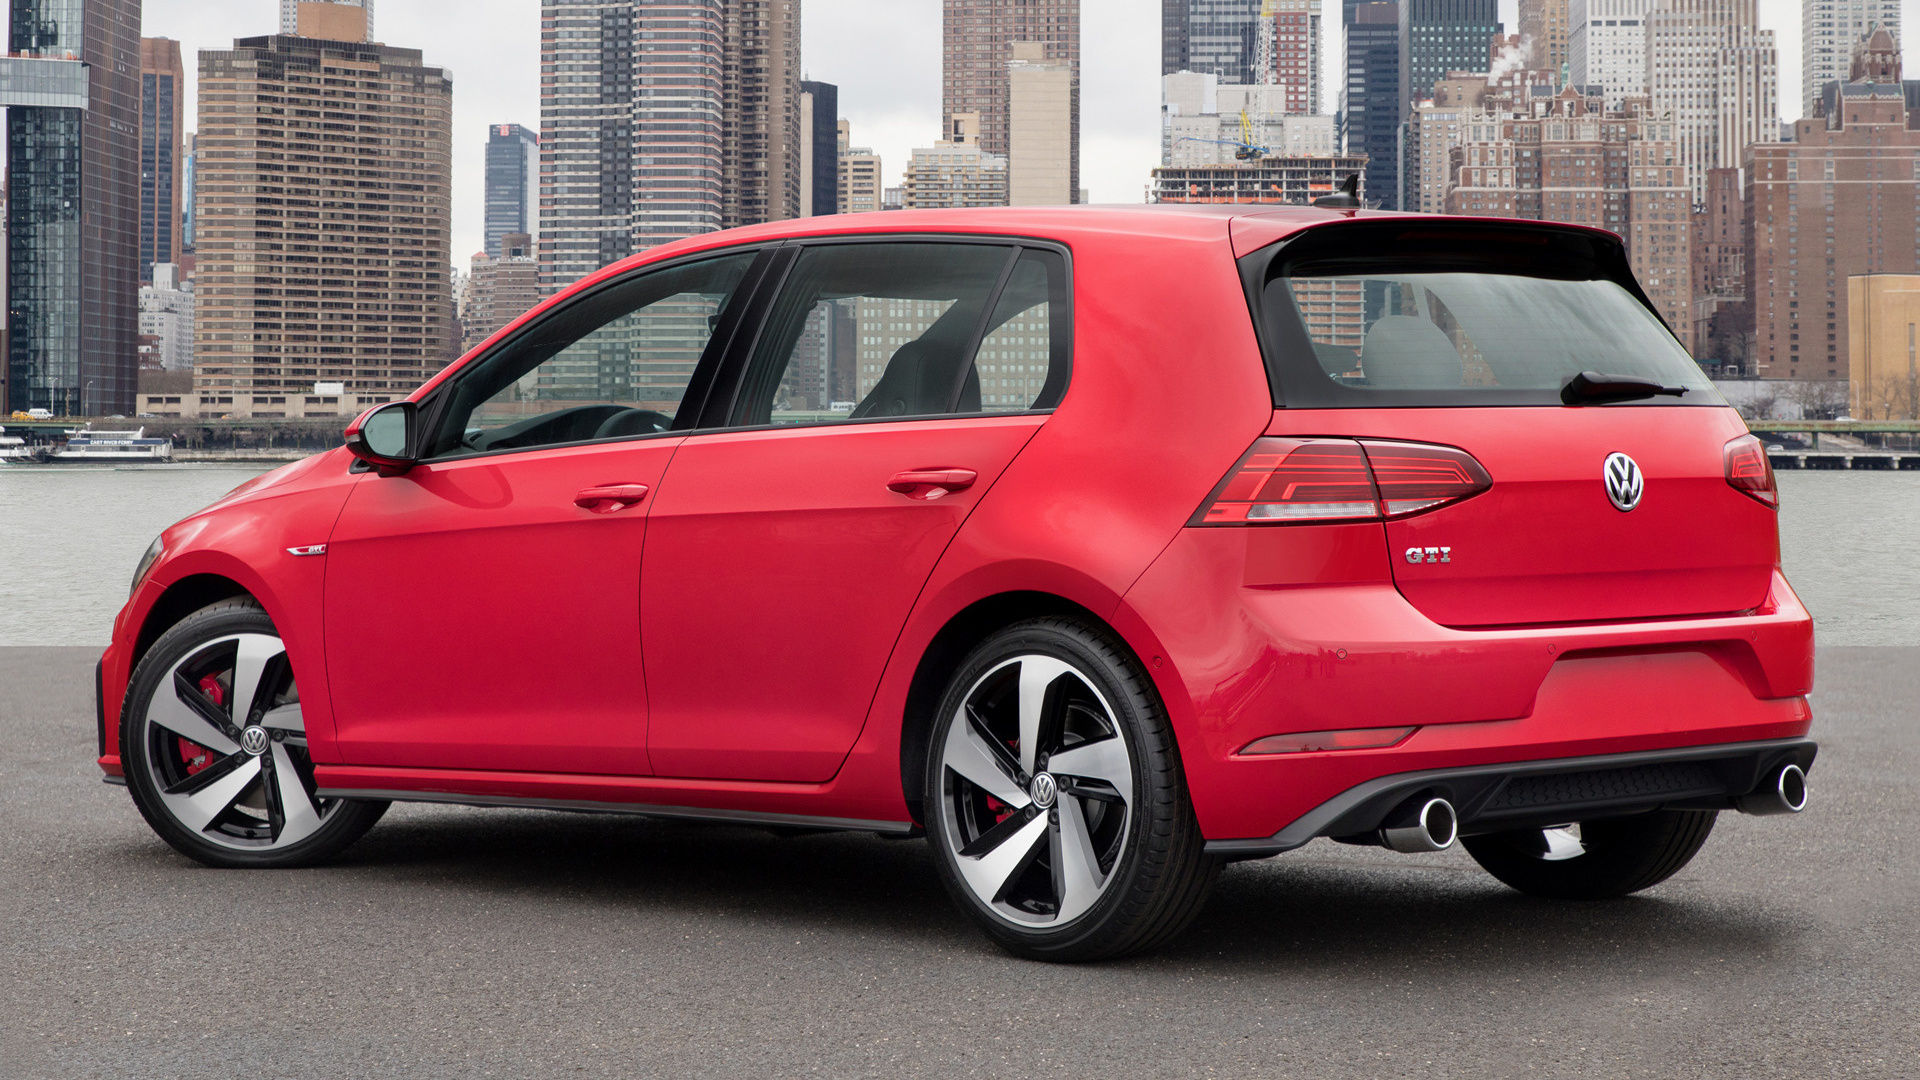 2018 volkswagen golf gti 5 door us wallpapers and hd. Black Bedroom Furniture Sets. Home Design Ideas